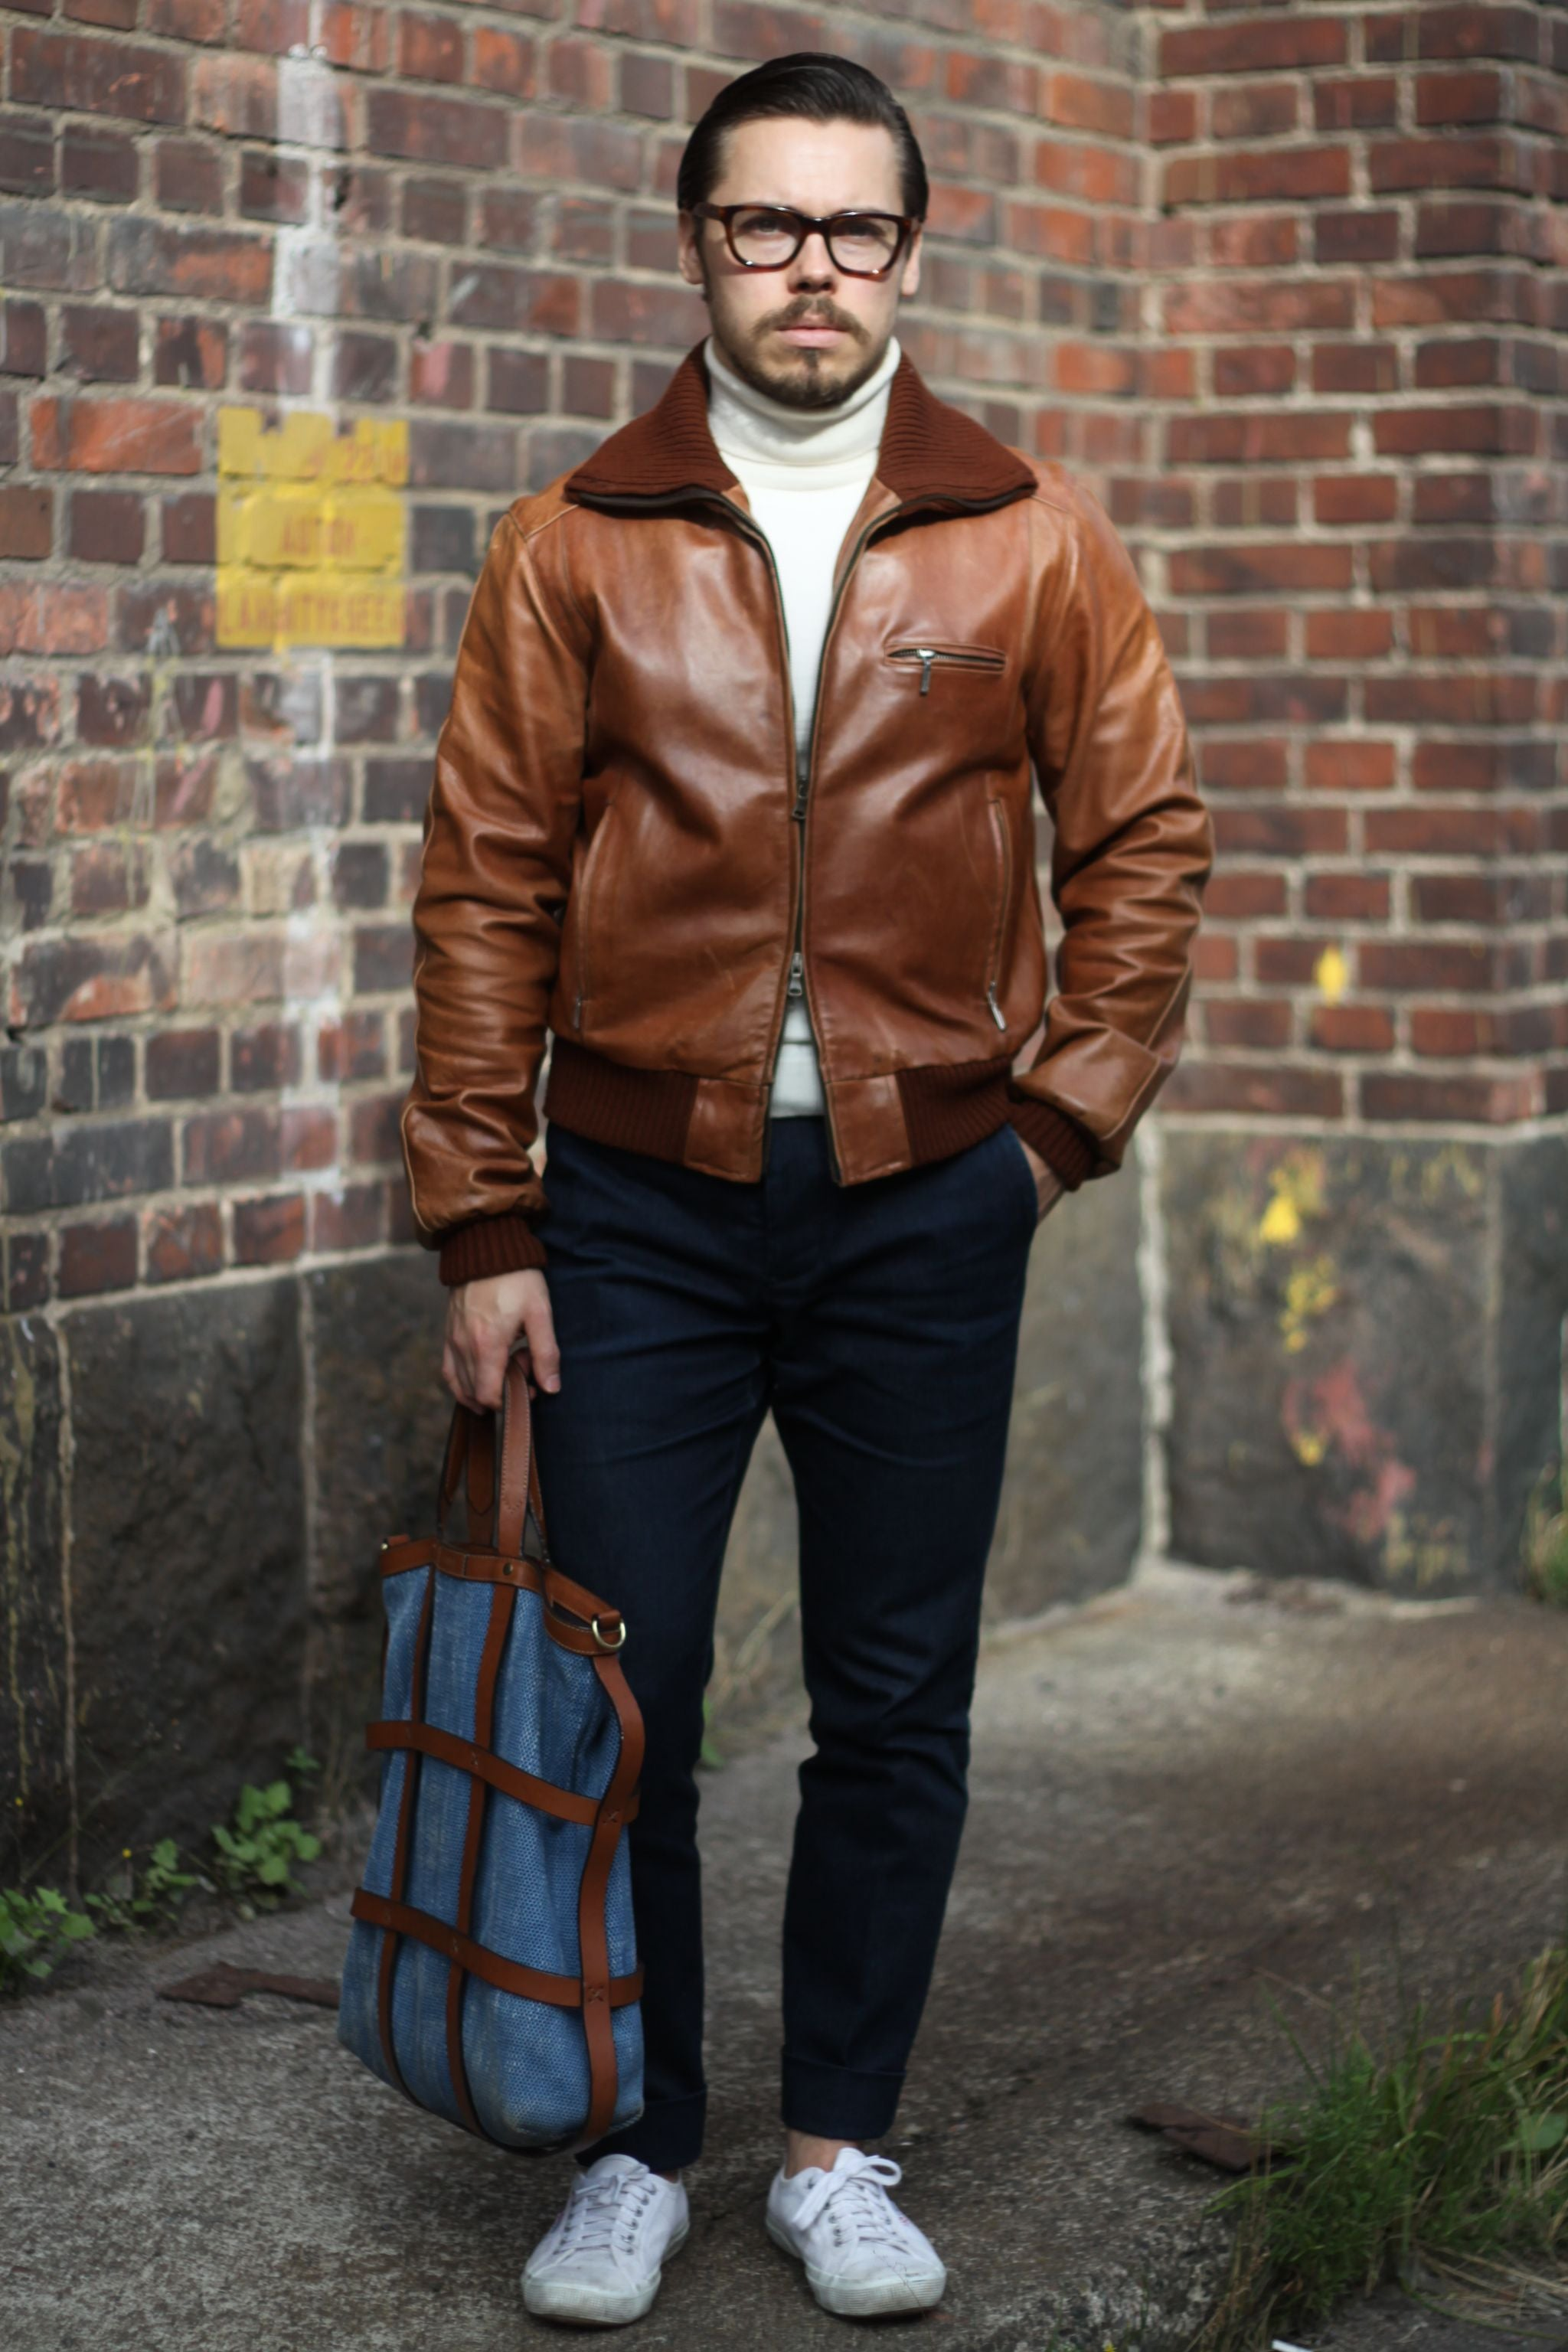 Brown A-1 leather jacket with dark blue denim